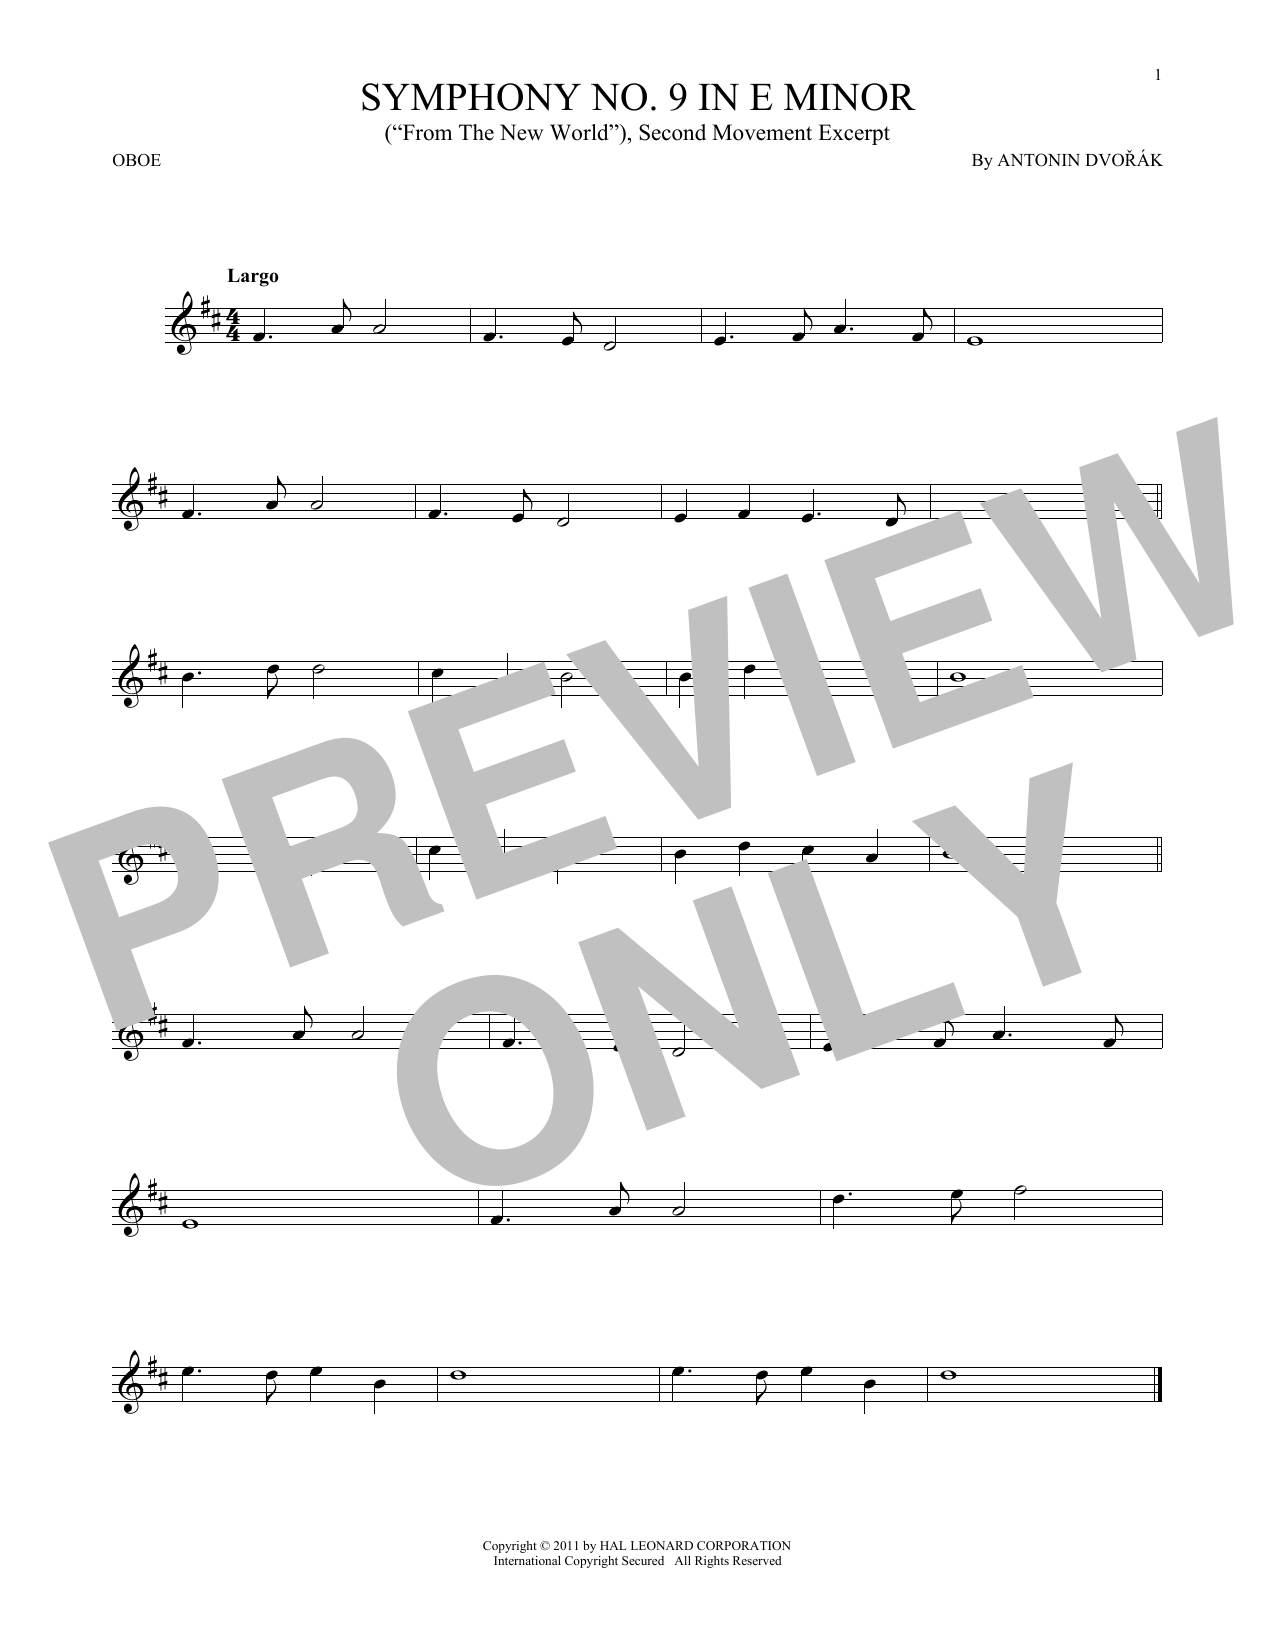 Symphony No. 9 In E Minor (From The New World), Second Movement Excerpt (Oboe Solo)